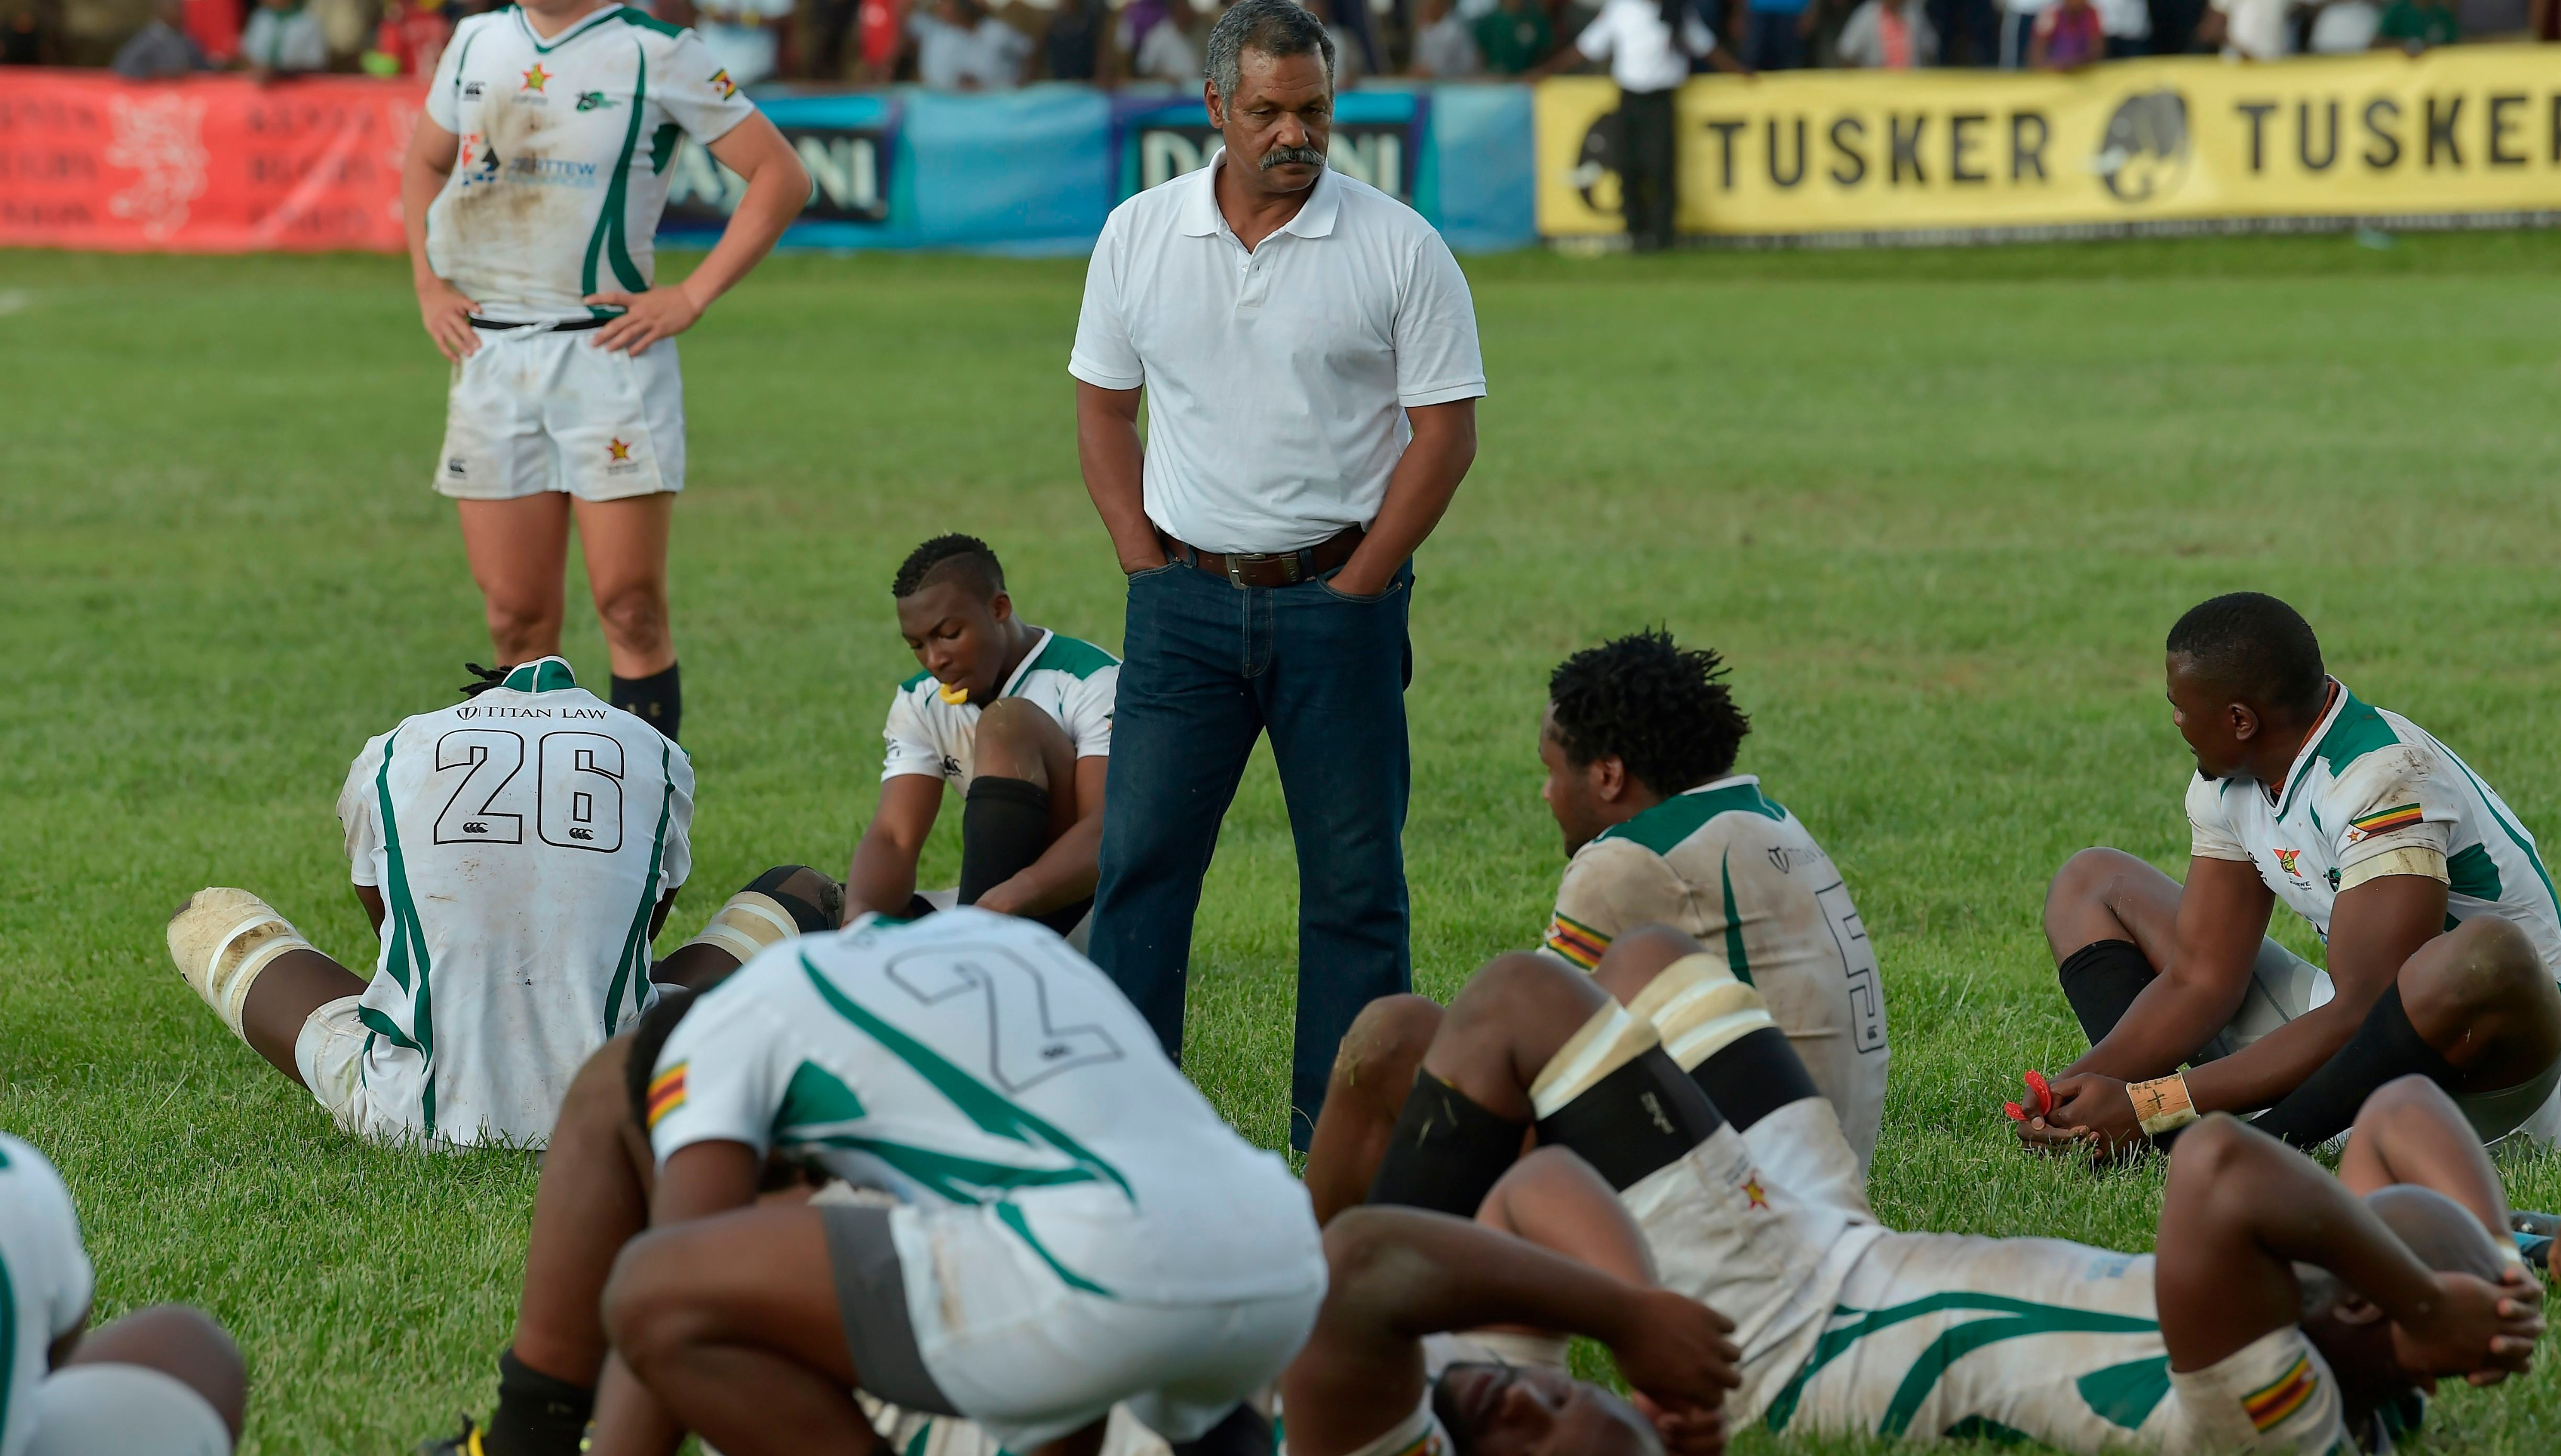 Zimbabweans Hit Back At South Africa Burning Out South: Rugby News: Tunisian Rugby Union Hits Back At Allegations